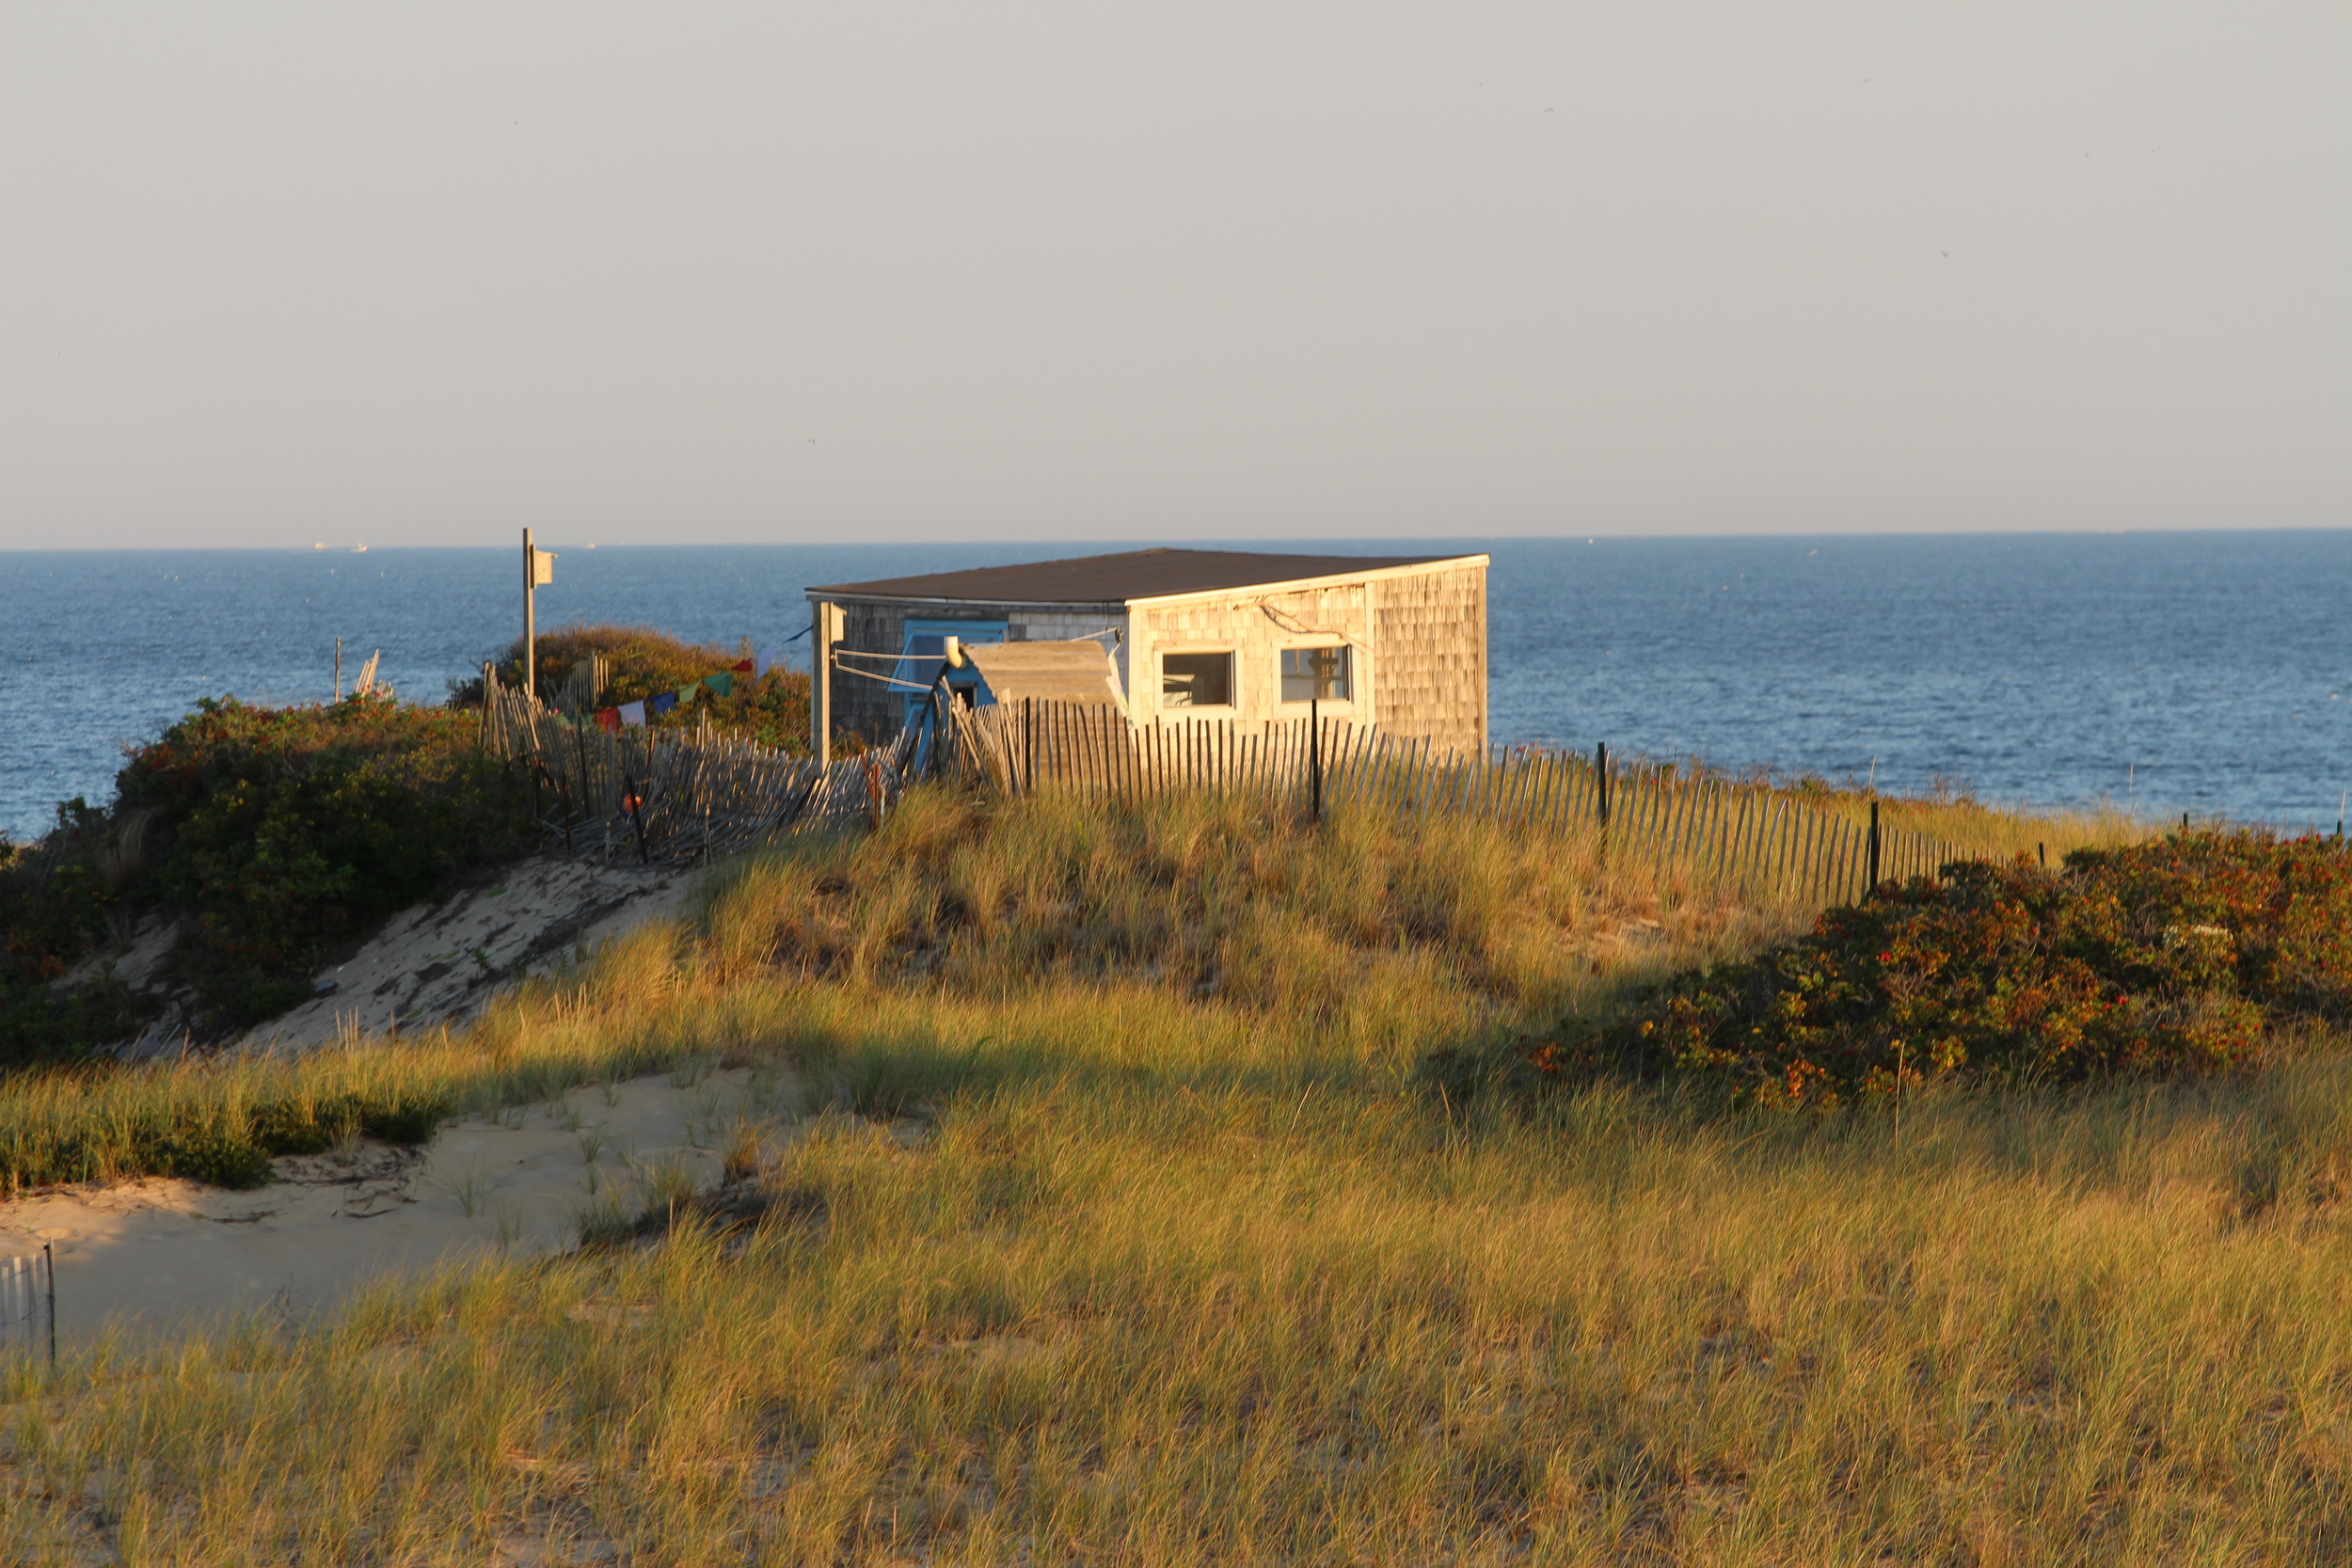 The Margo Gelb Shack hugging the horizon in the distance.